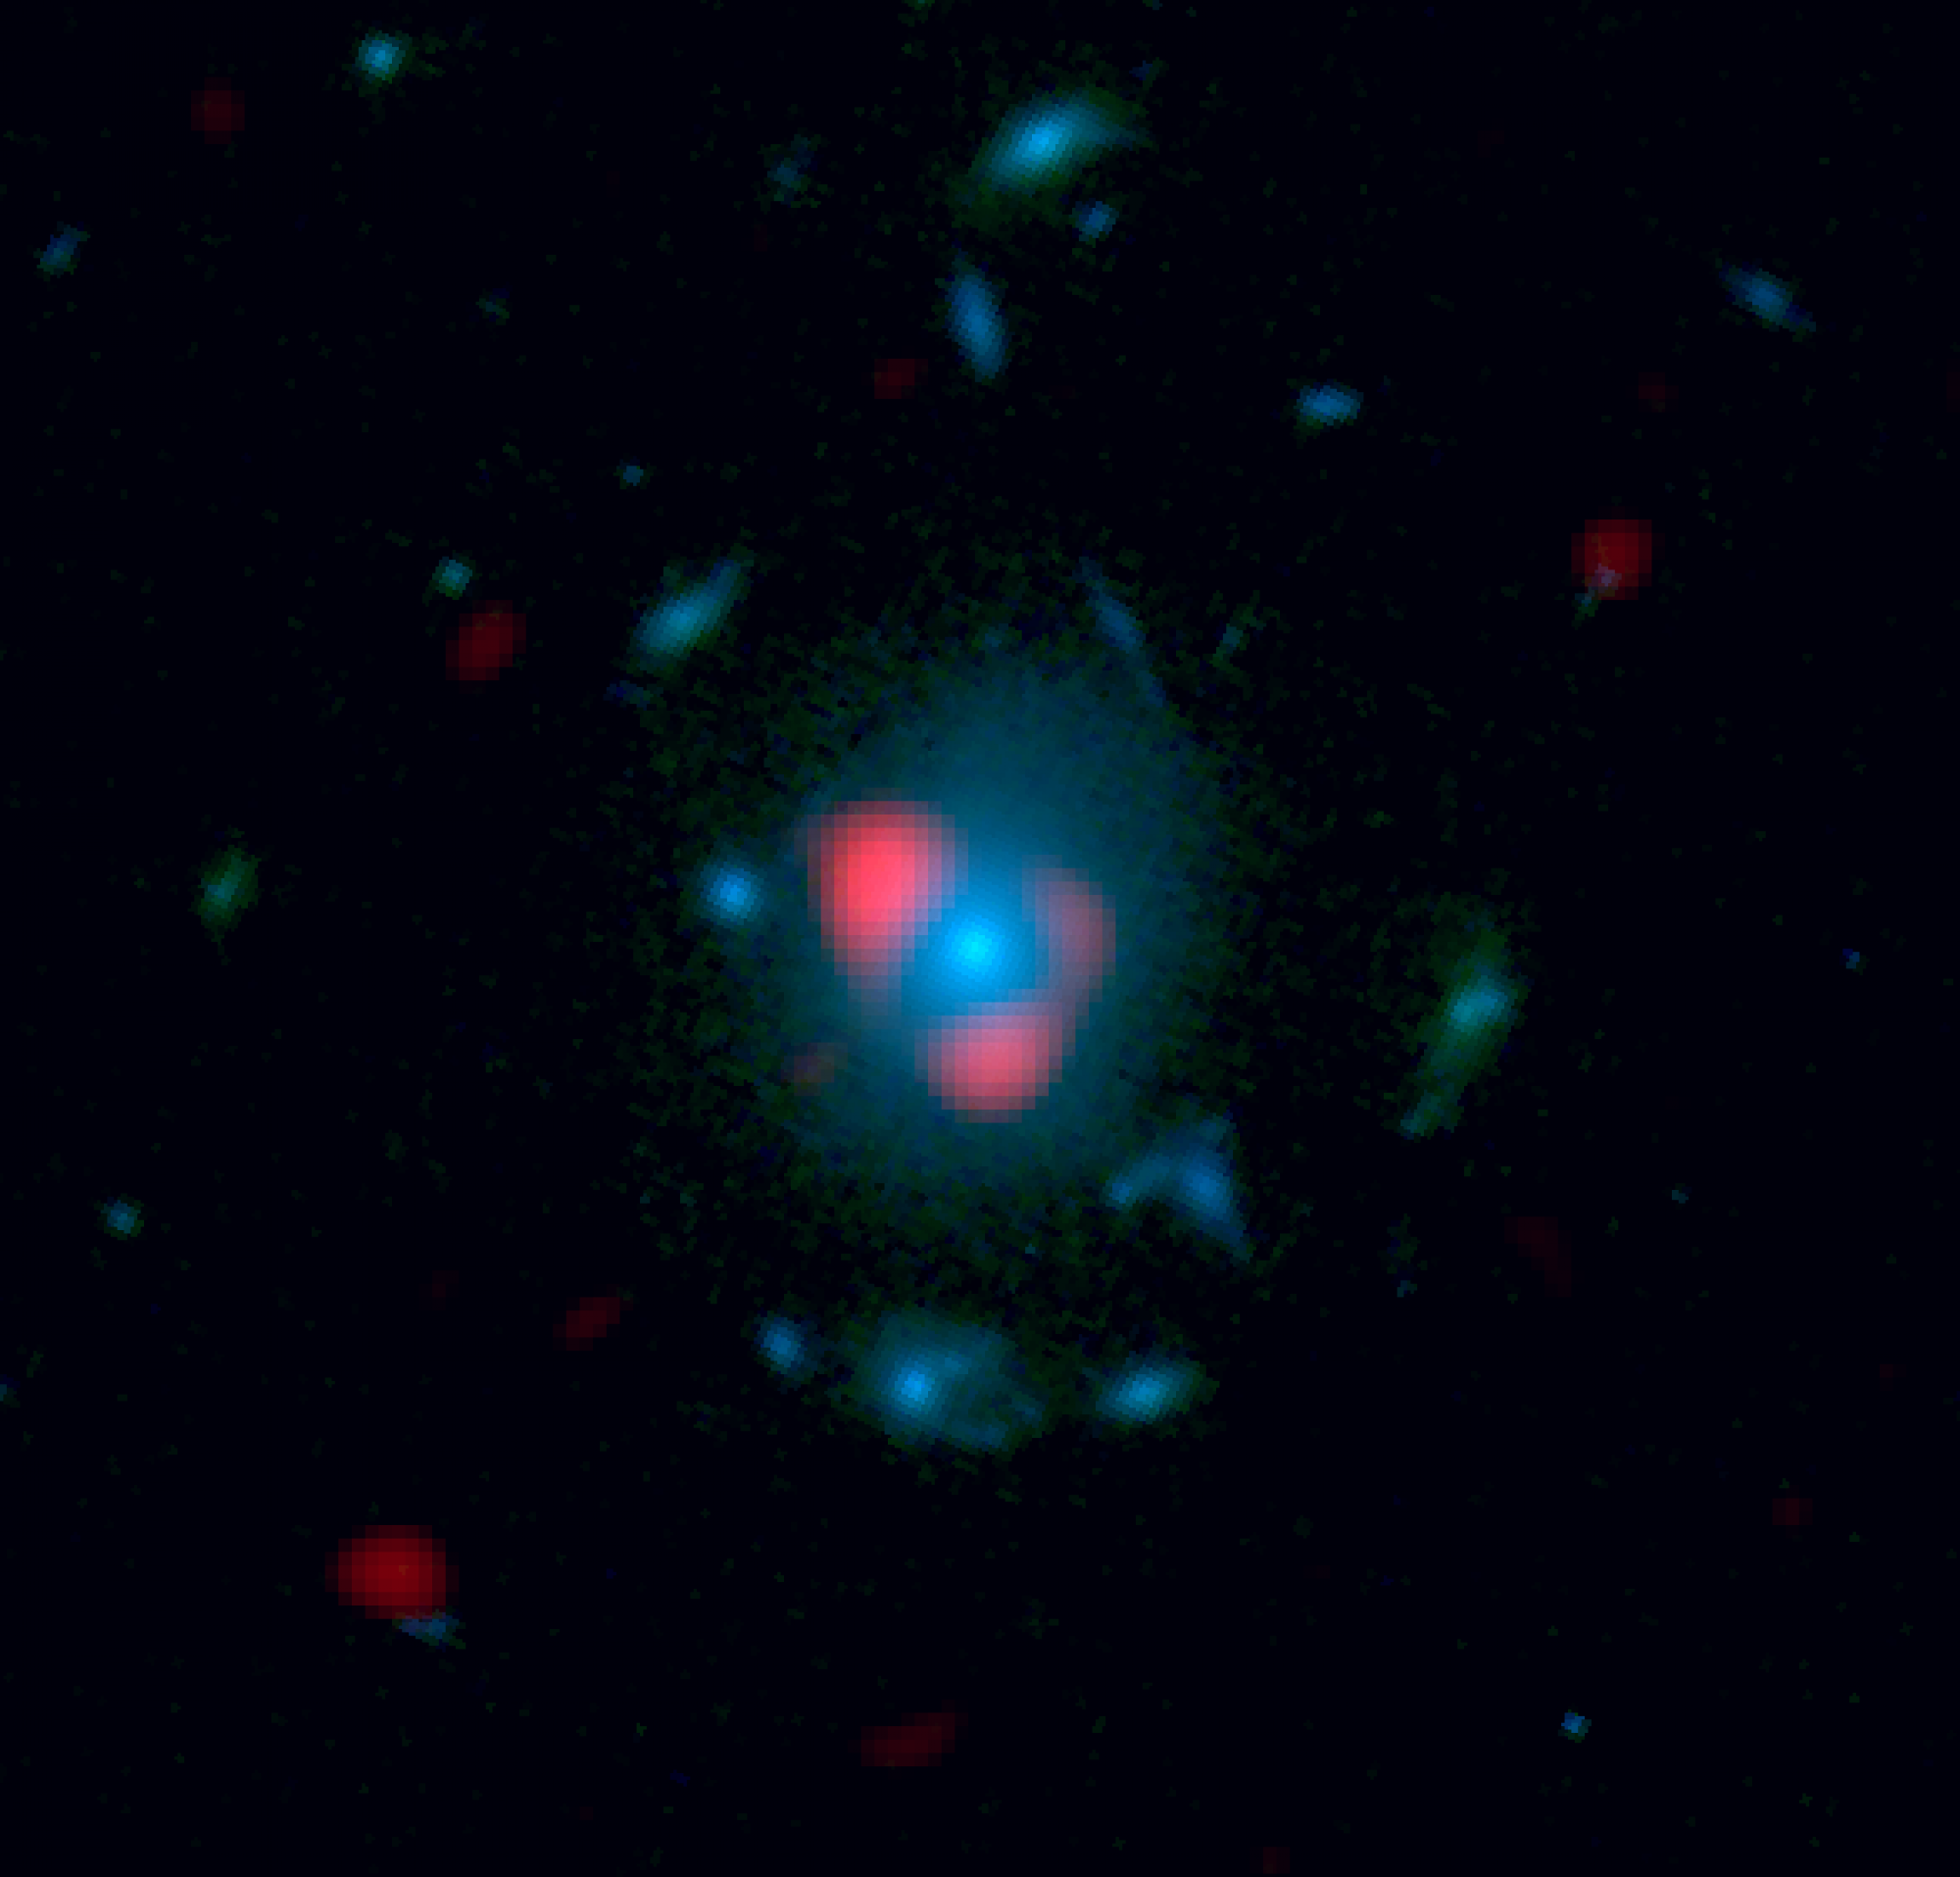 Cosmic donut: This image combines data from ALMA and the Hubble Space Telescope. Shown in red is the distant, background galaxy, being distorted by the gravitational lens effect produced by the galaxy in the foreground, shown in blue as measured by Hubble